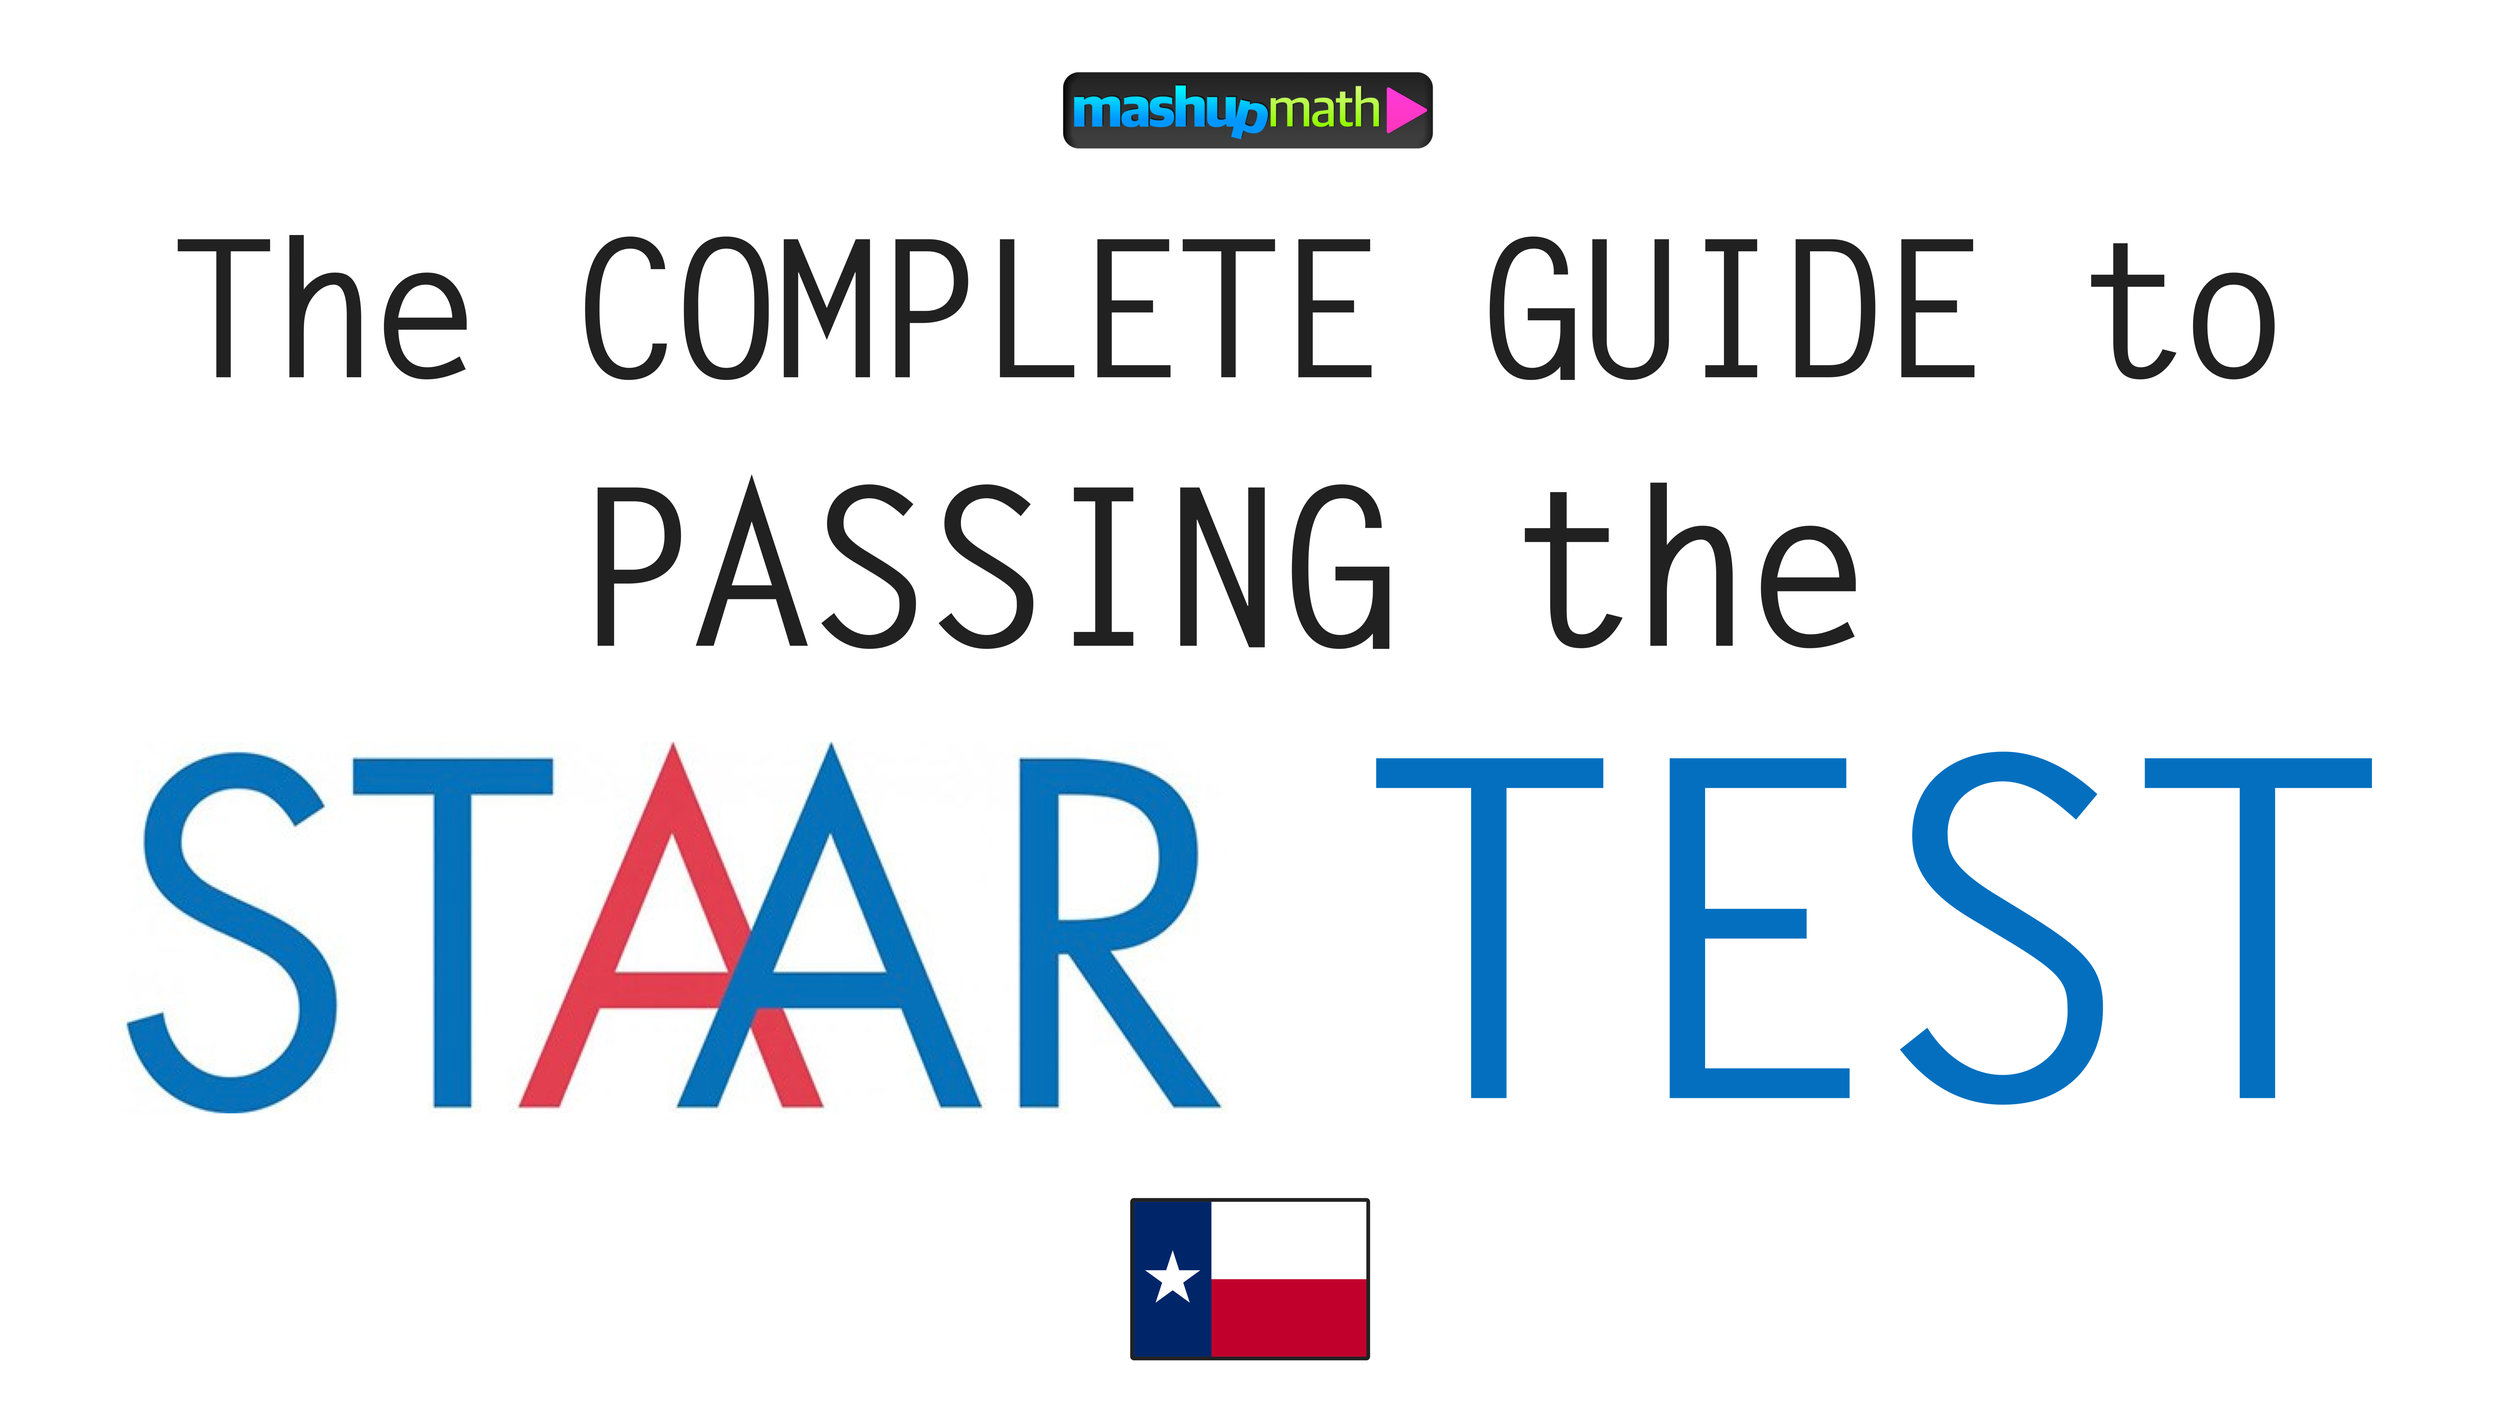 medium resolution of The Ultimate Guide to Passing the Texas STAAR Test — Mashup Math